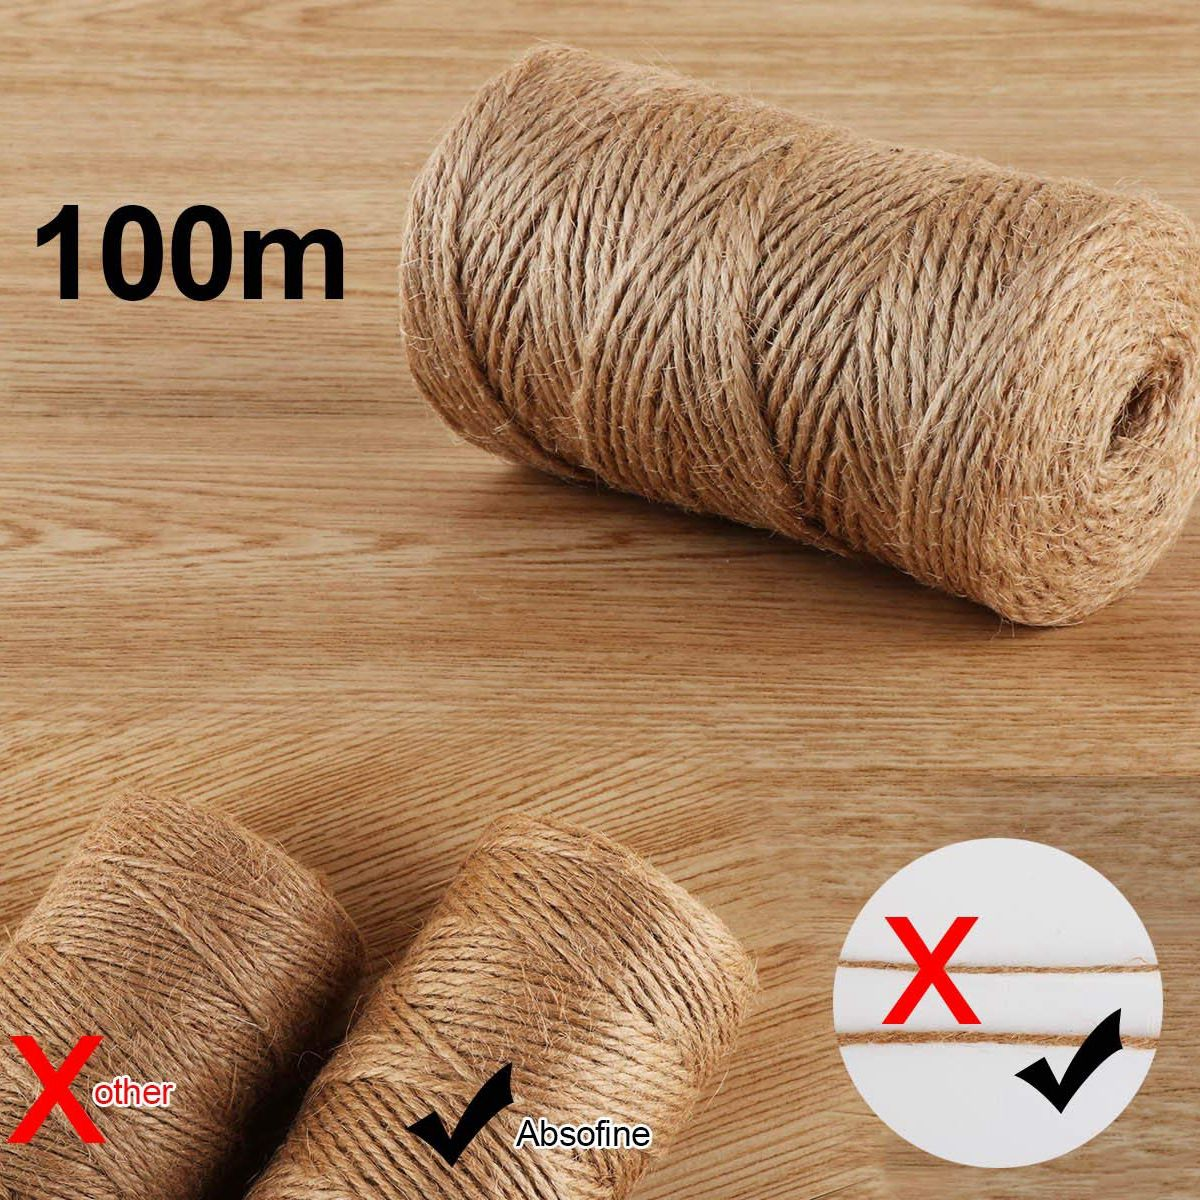 Garden Cord with 100 Clothespins Wood 3.5cm Craft Cord Jute Cord 100M Natural Jute Cord Clothespins Packing Party Favor